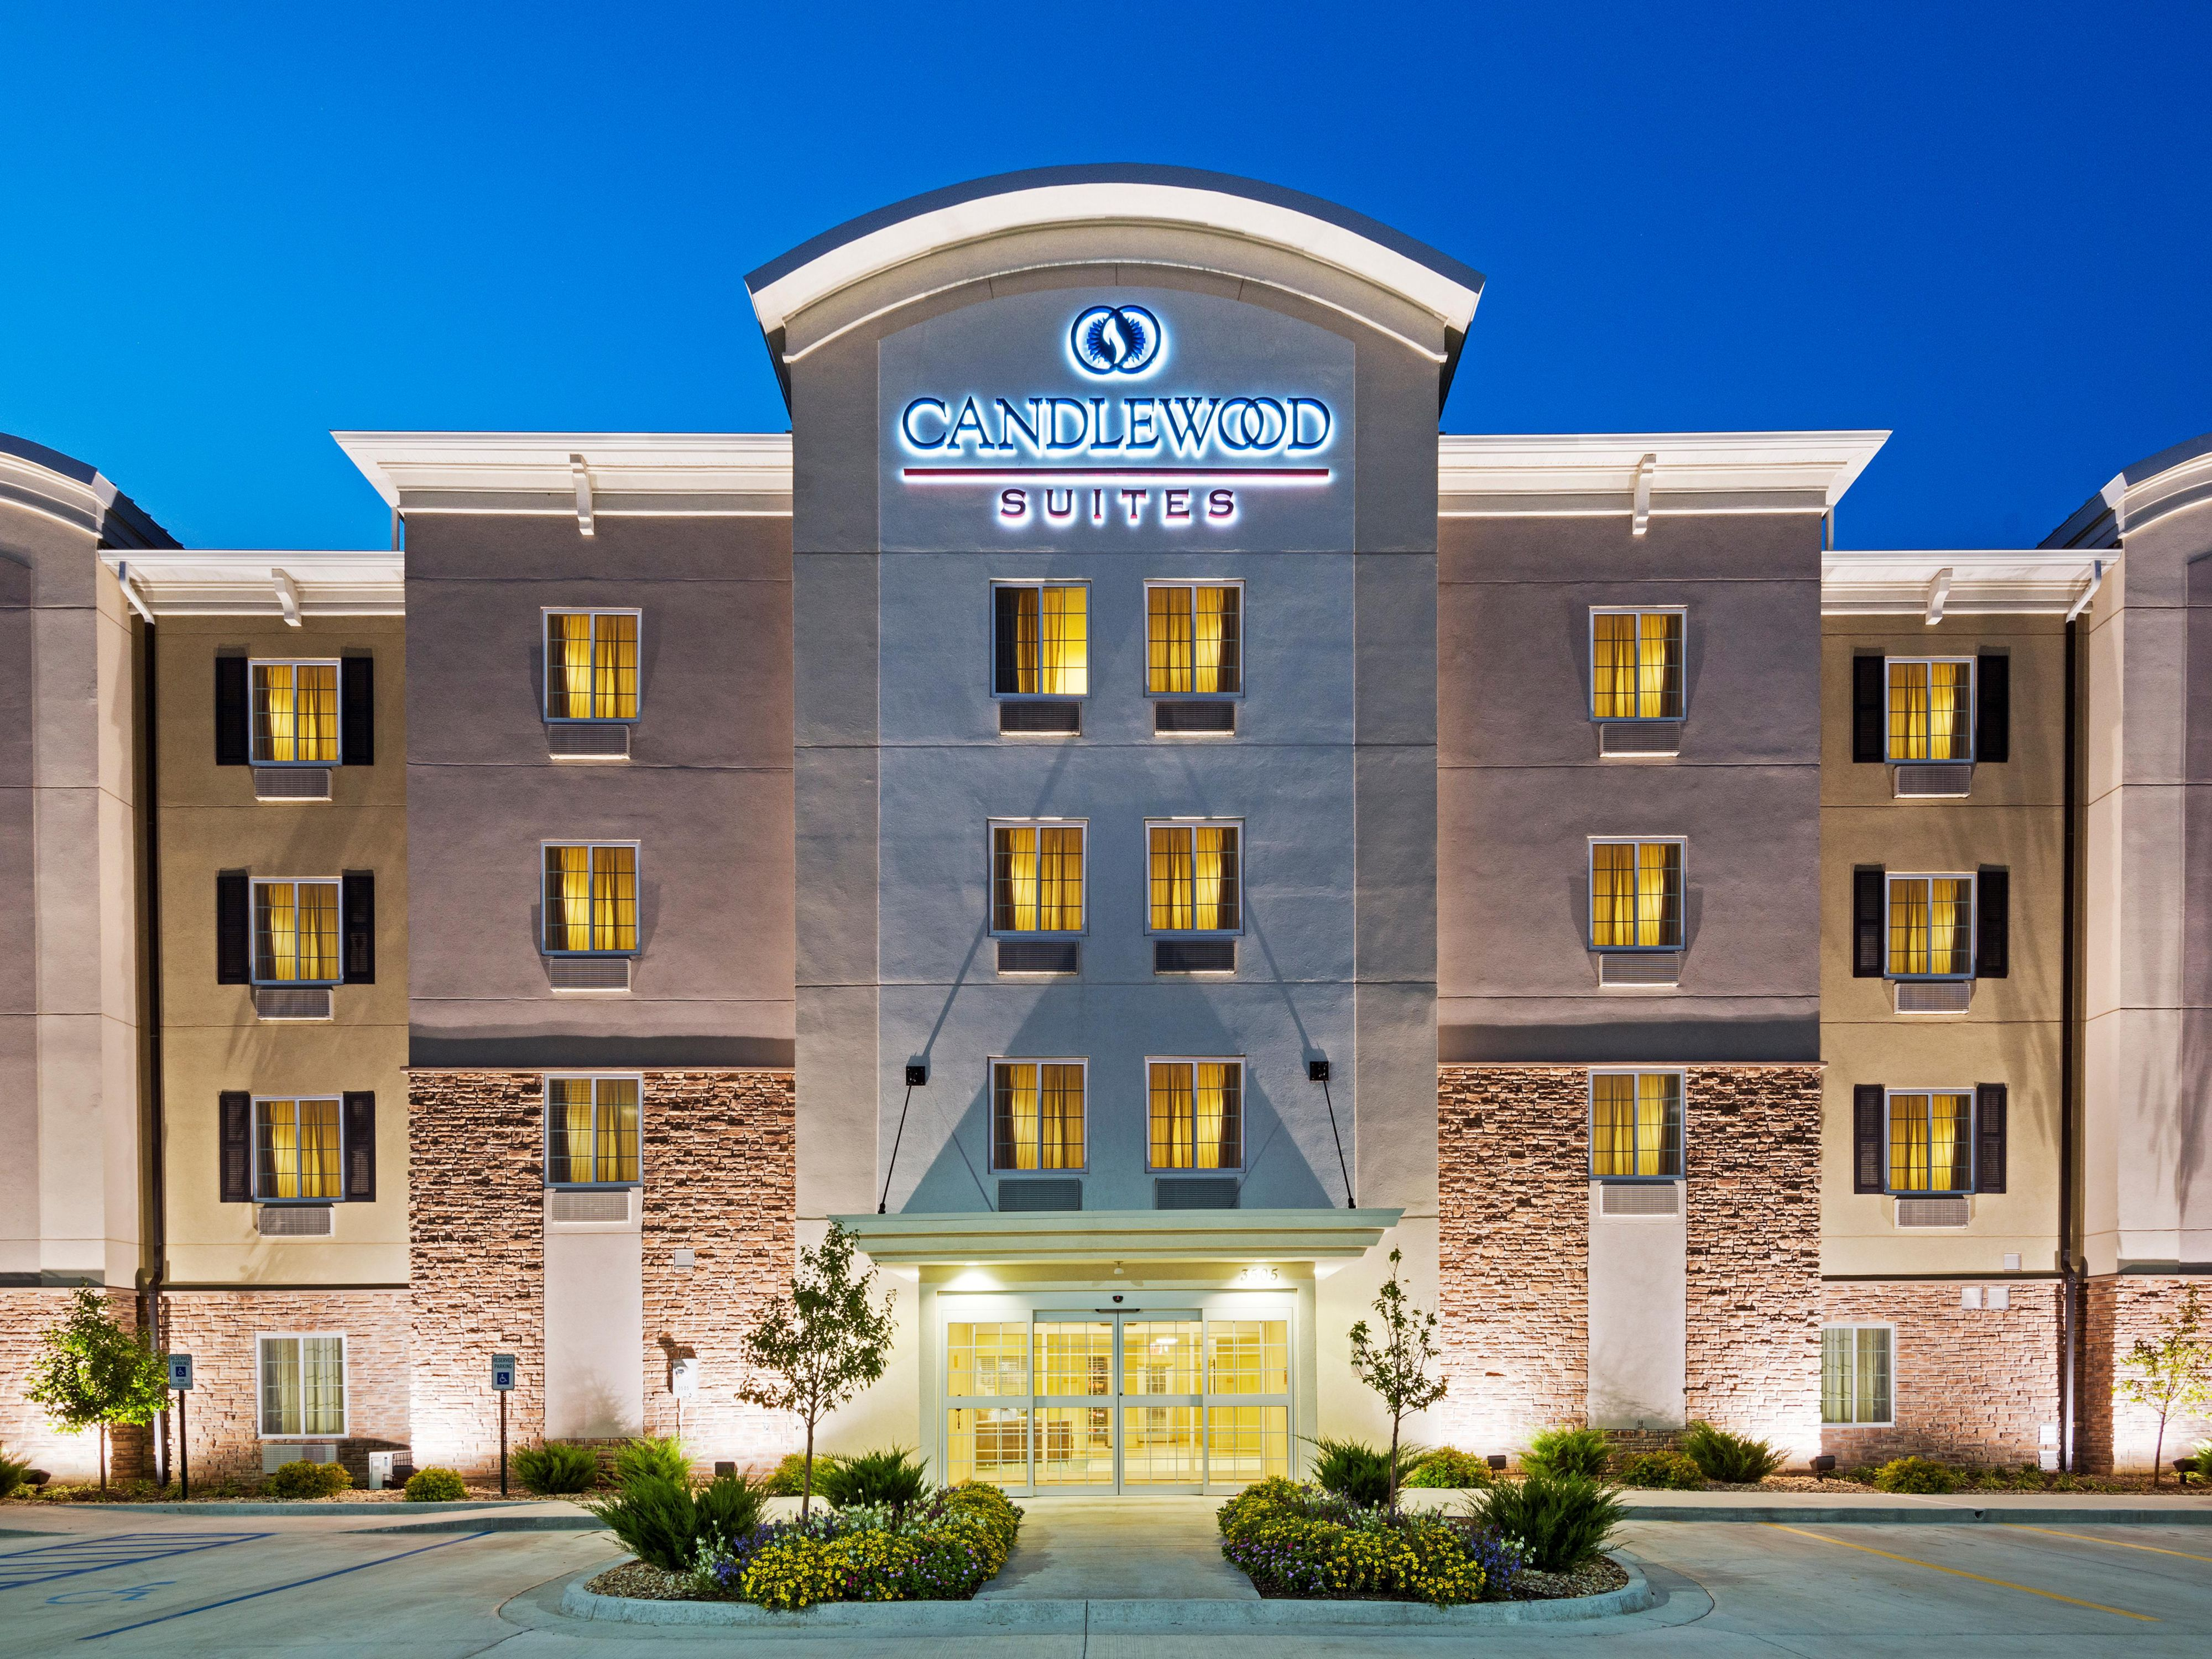 Candlewood Suites DTWN Medical Center - Extended Stay Hotel in